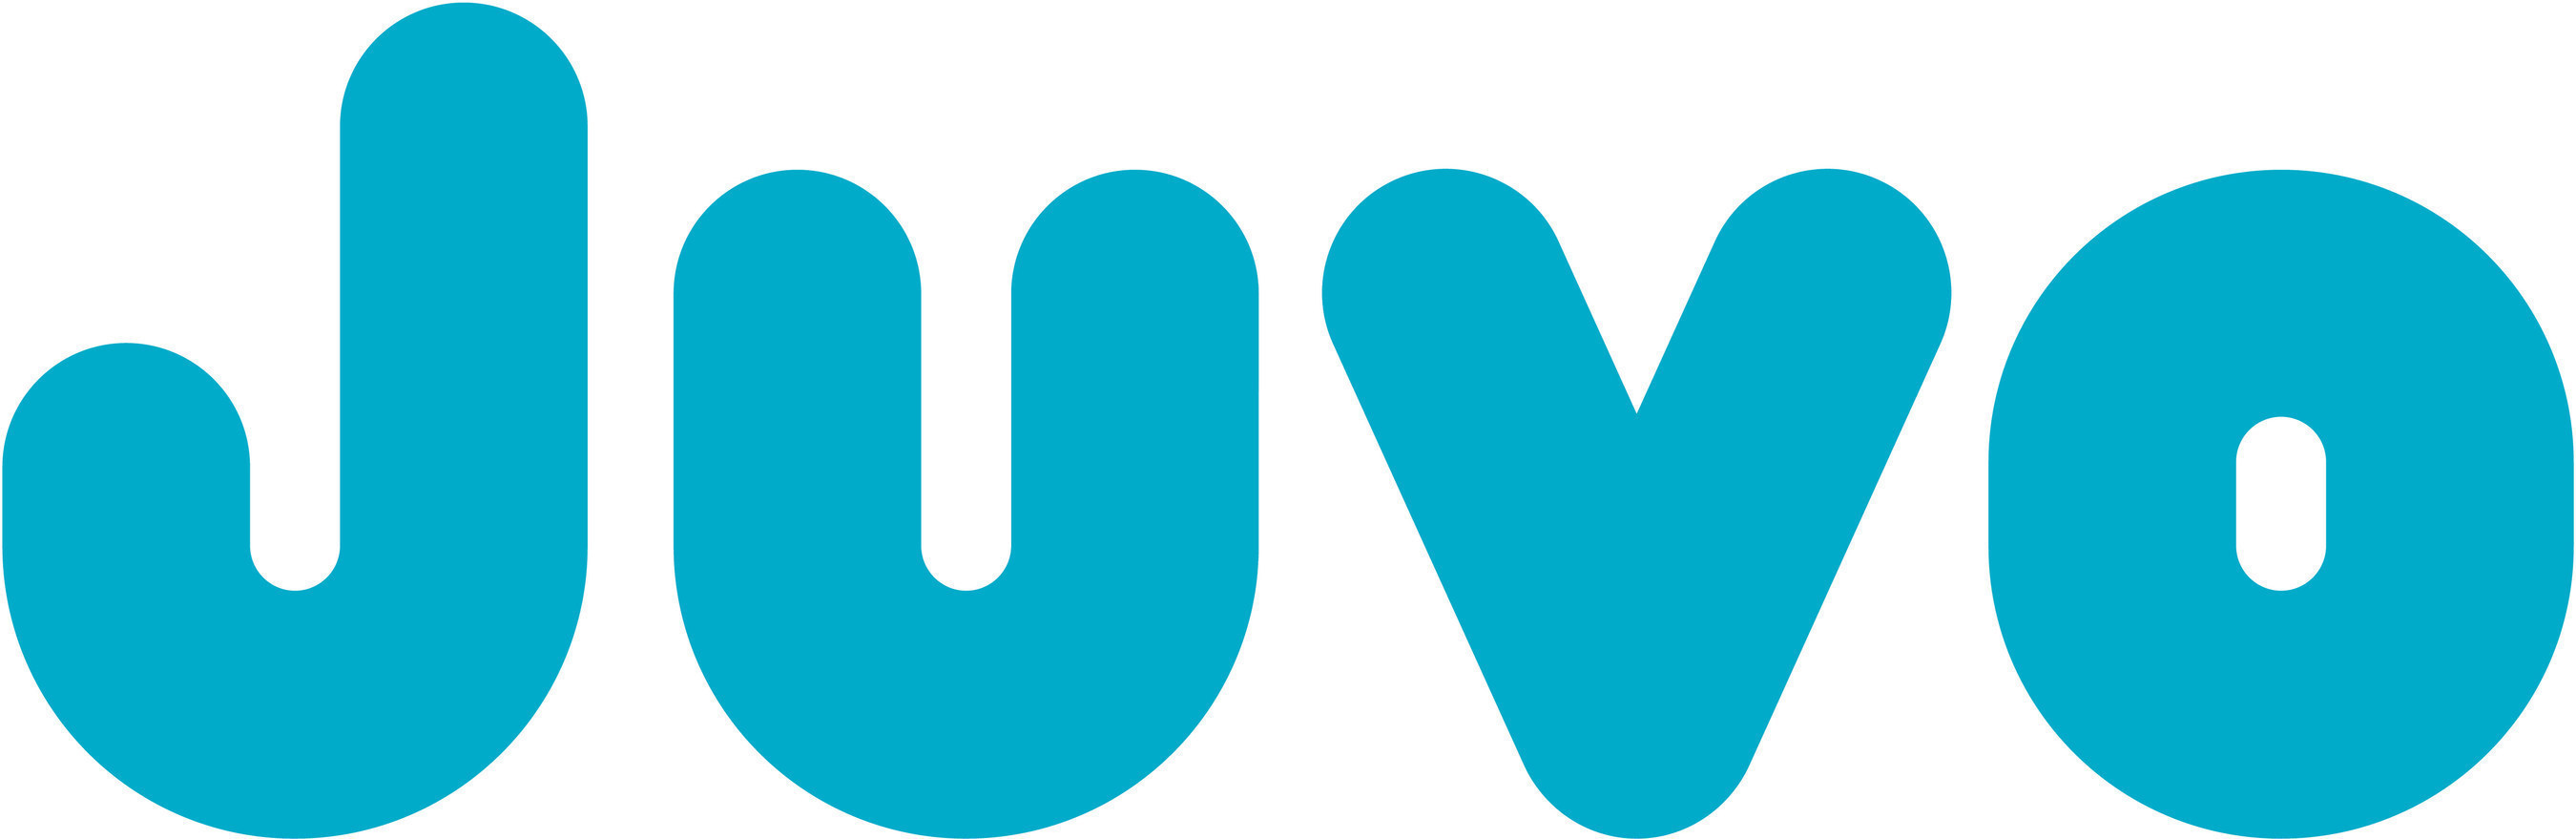 Juvo Launches With A Reach Of 100M Users, Pursues Mission To Provide Financial Identity to Prepaid Mobile Users Worldwide